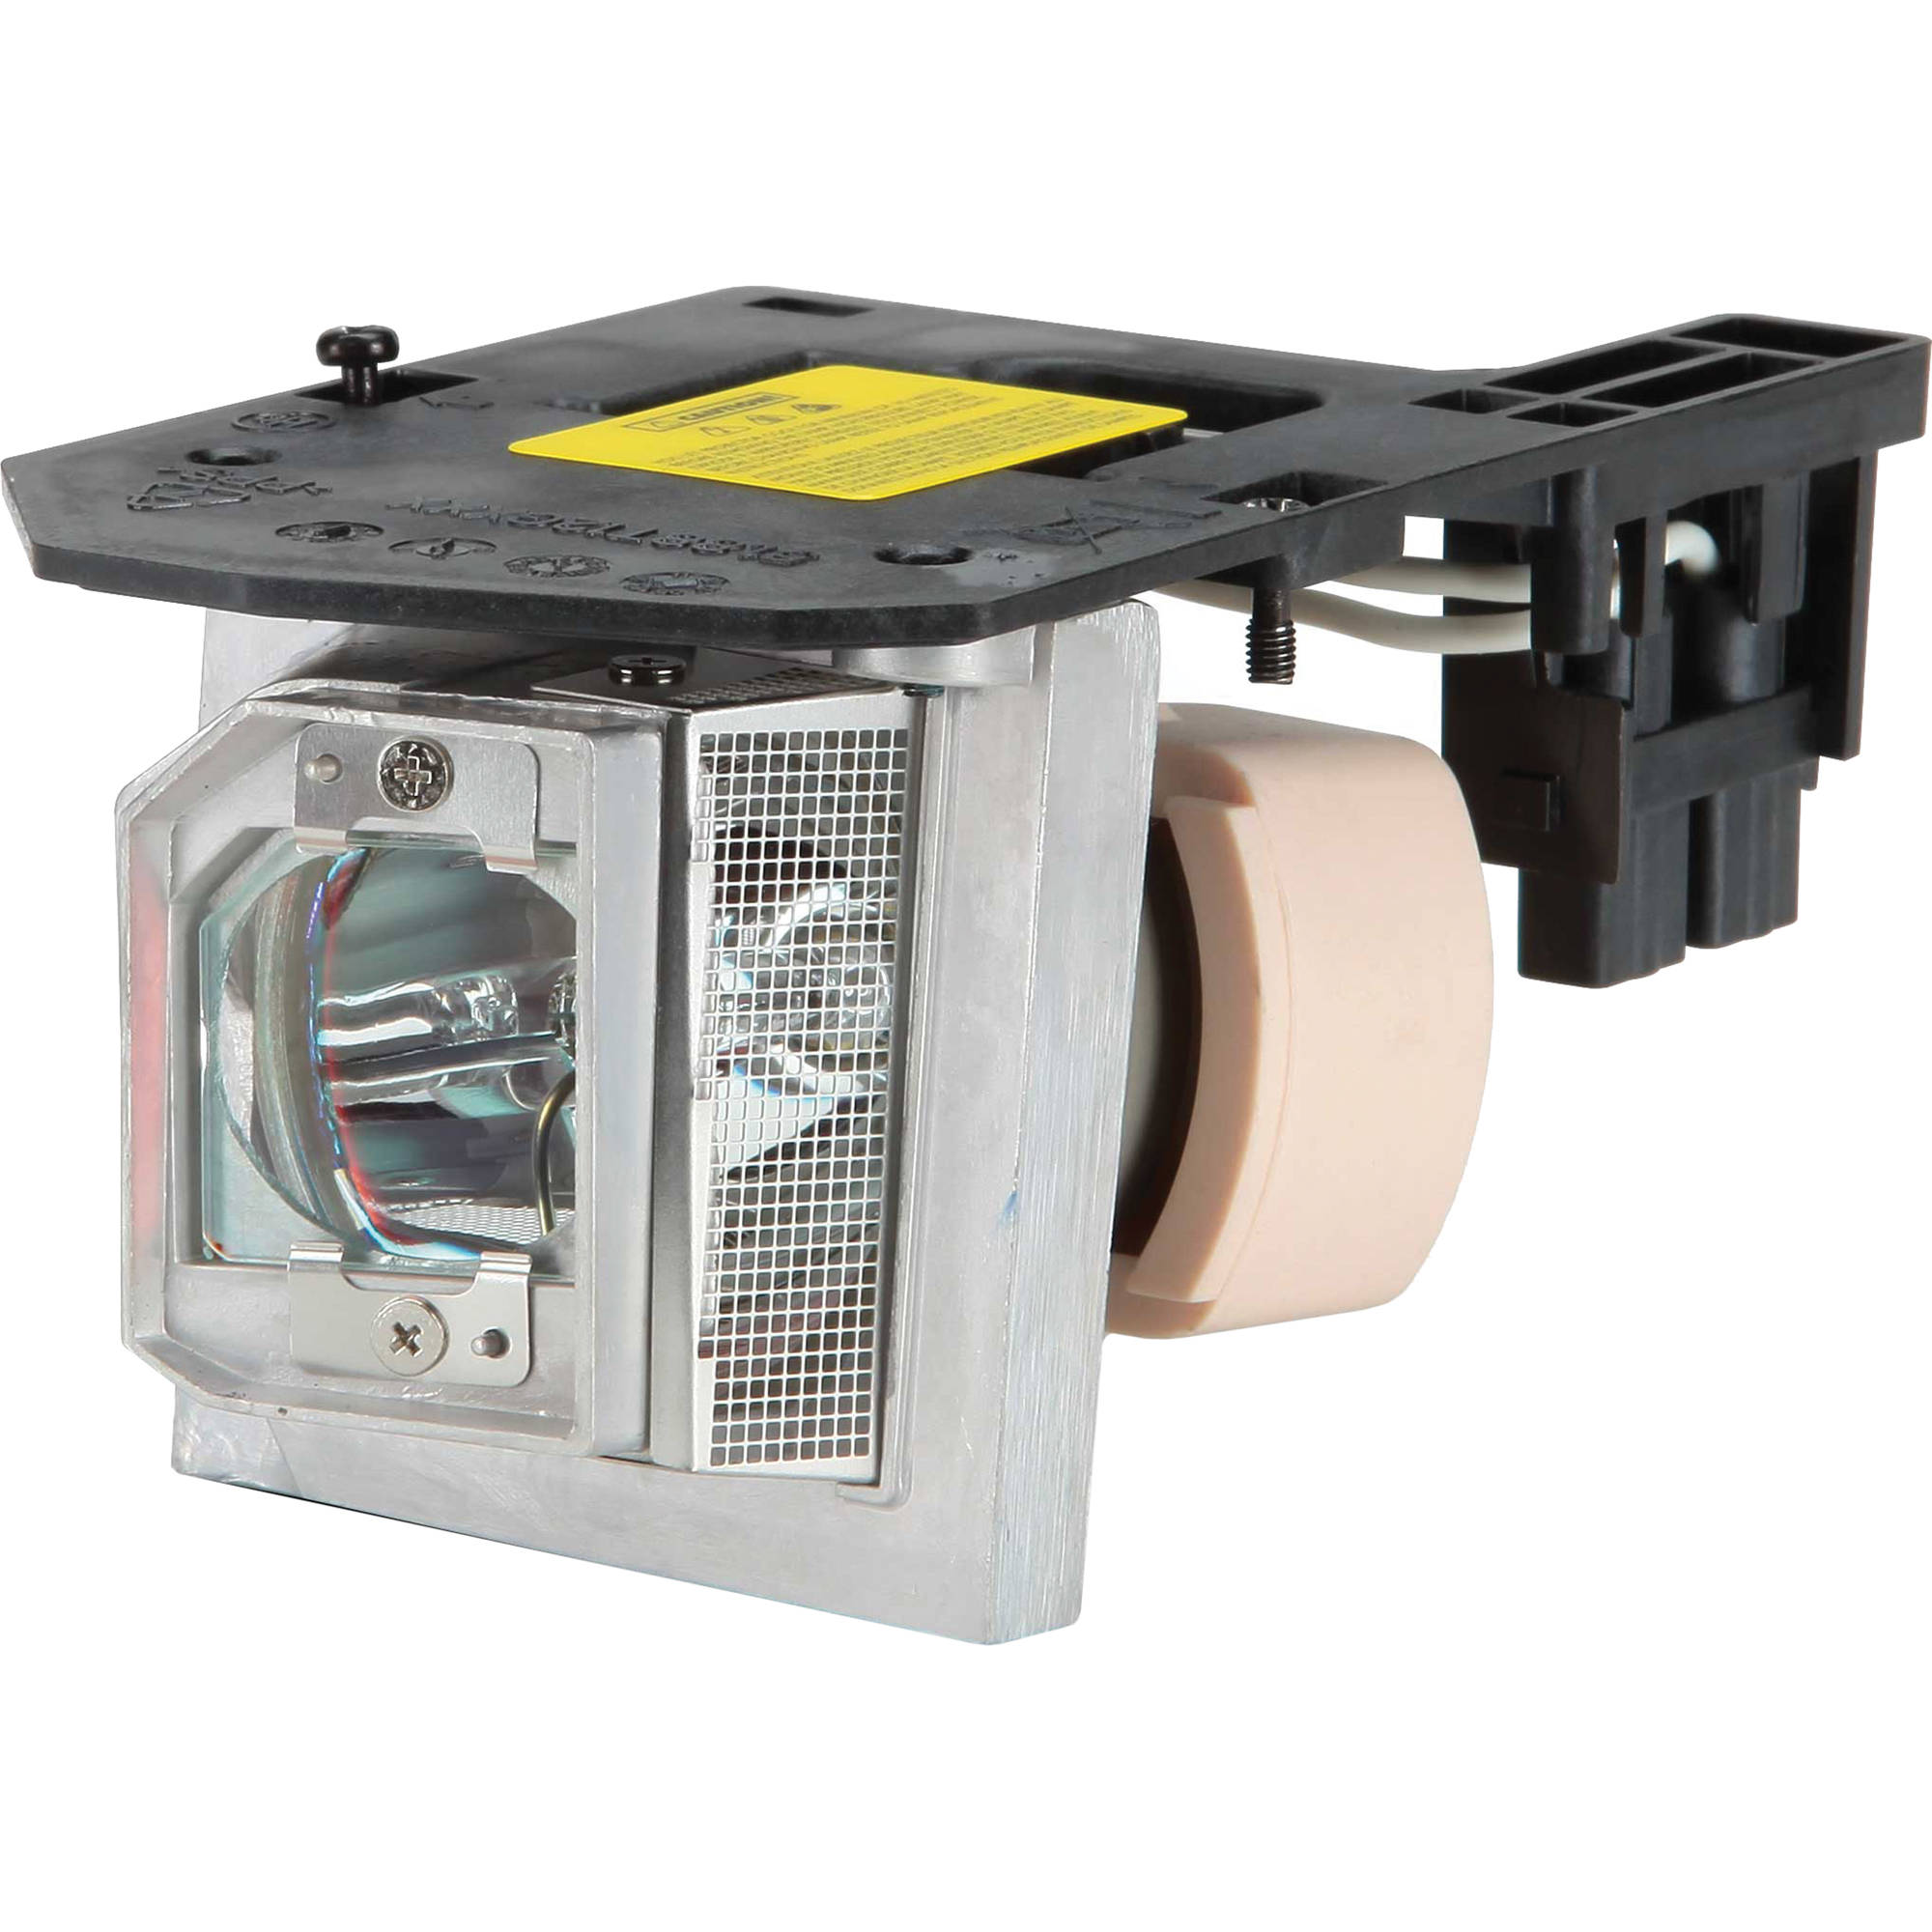 X127H Acer Projector Lamp Replacement with Original Quality Osram Brand Bulb Inside